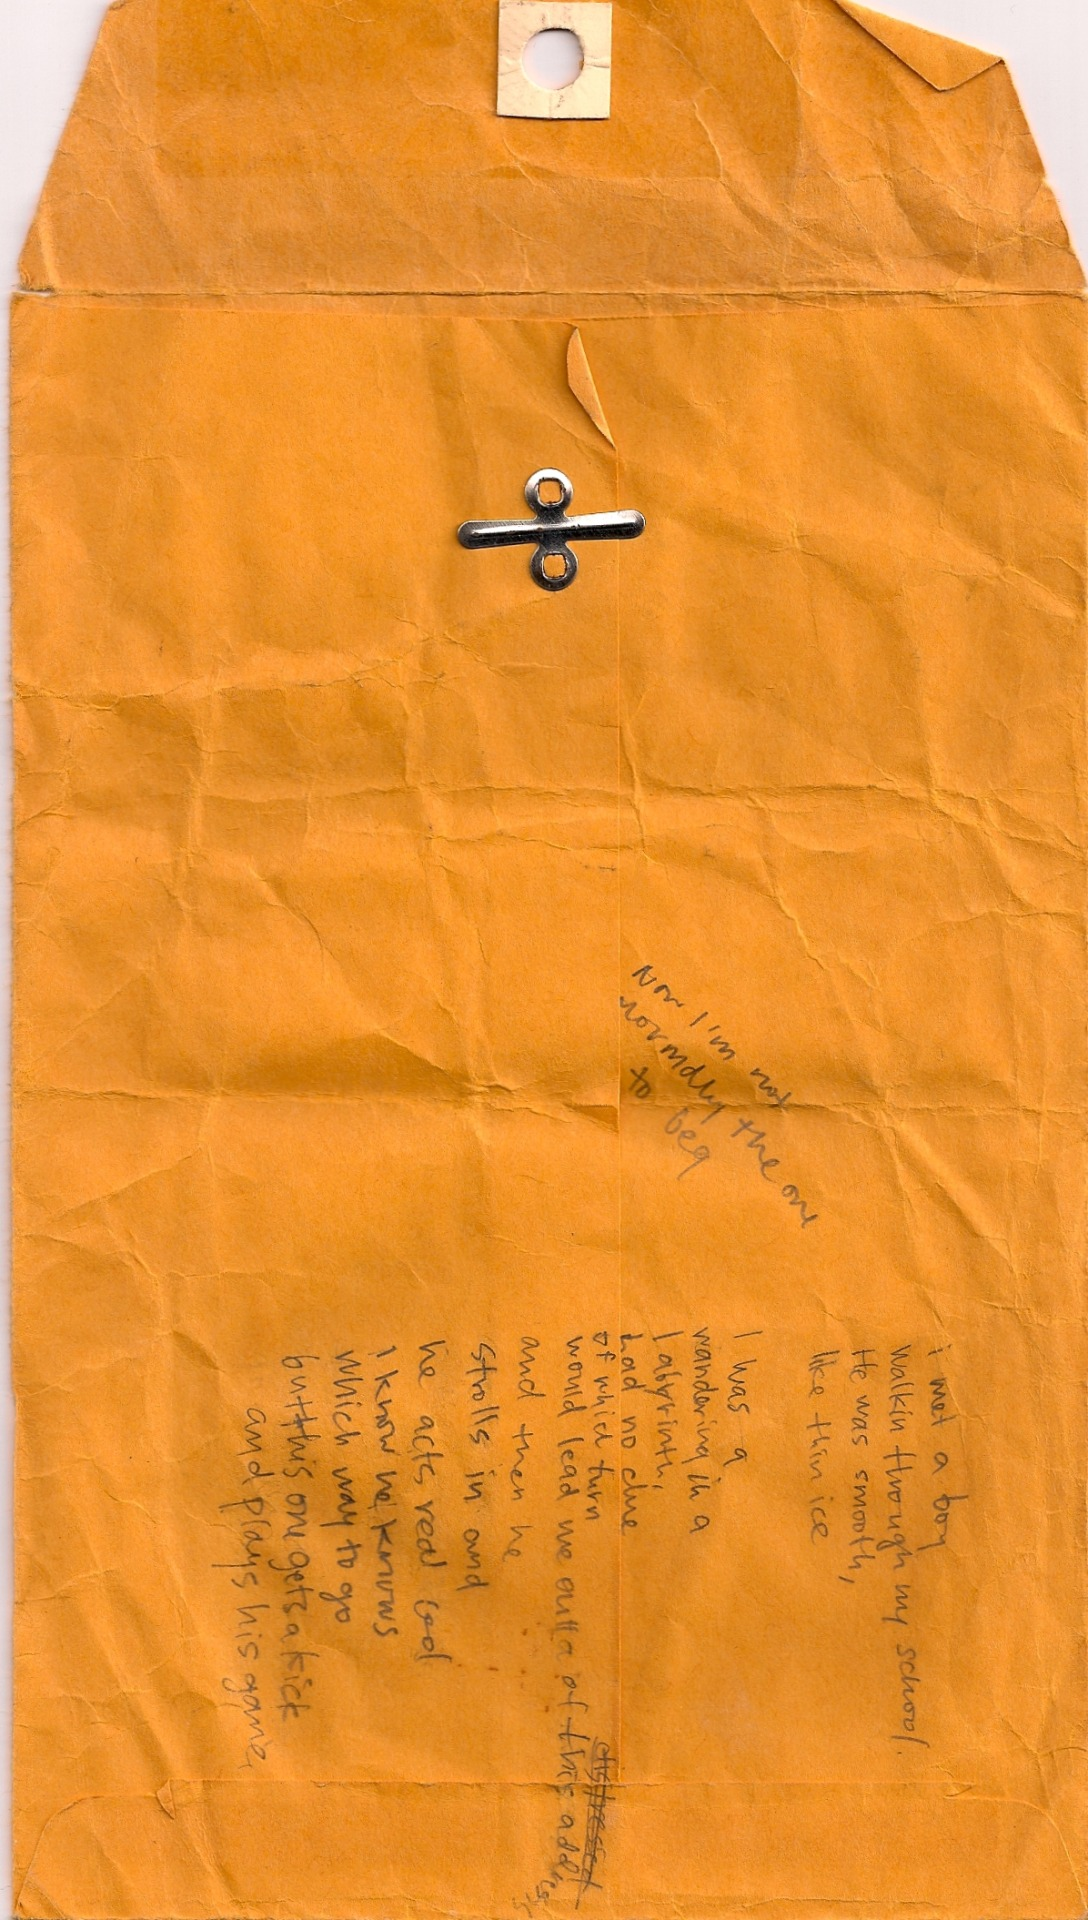 More envelope lyrics.